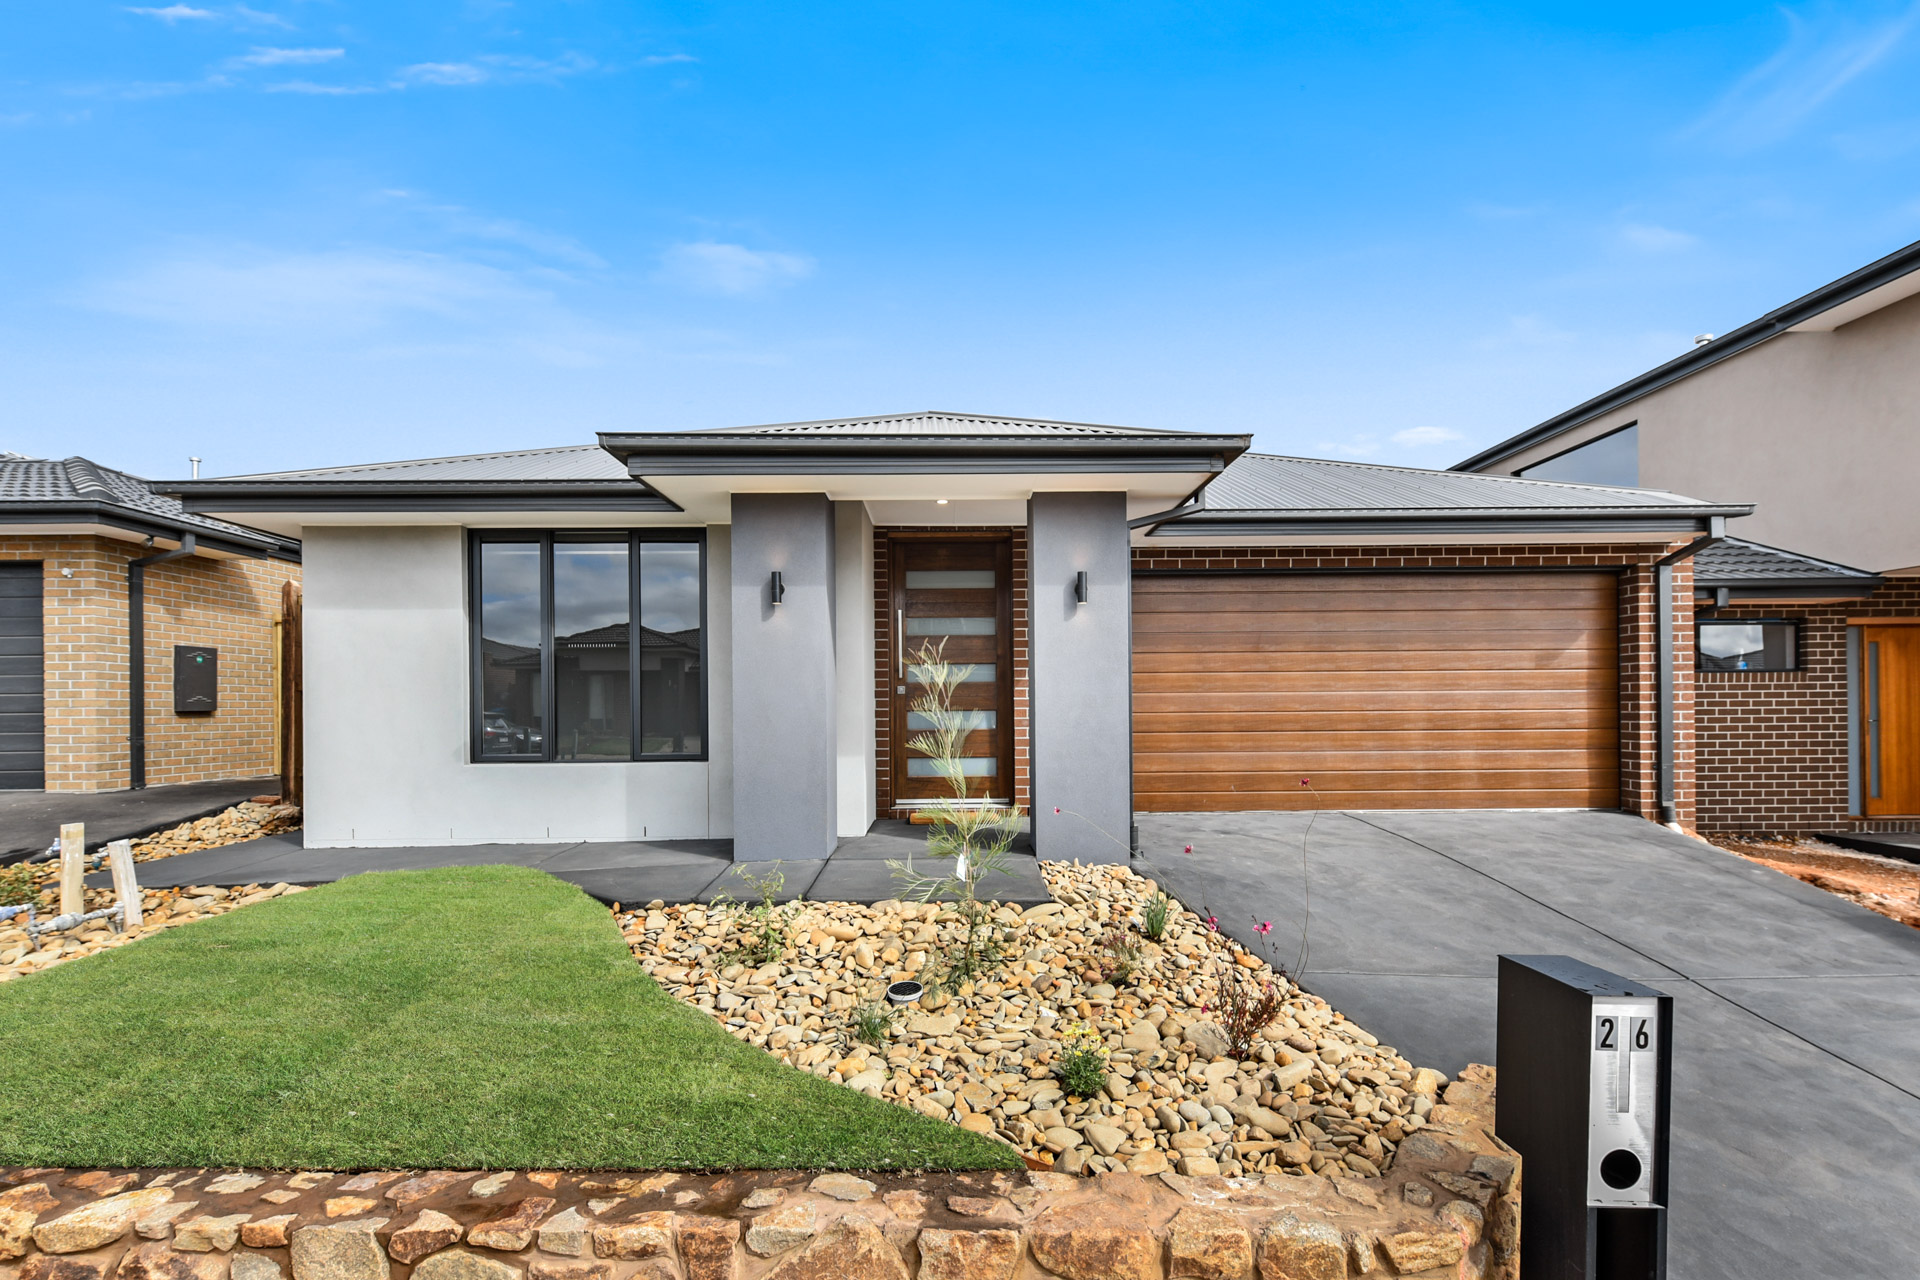 26 Knightsford Avenue, CLYDE, VIC, 3978 - Image